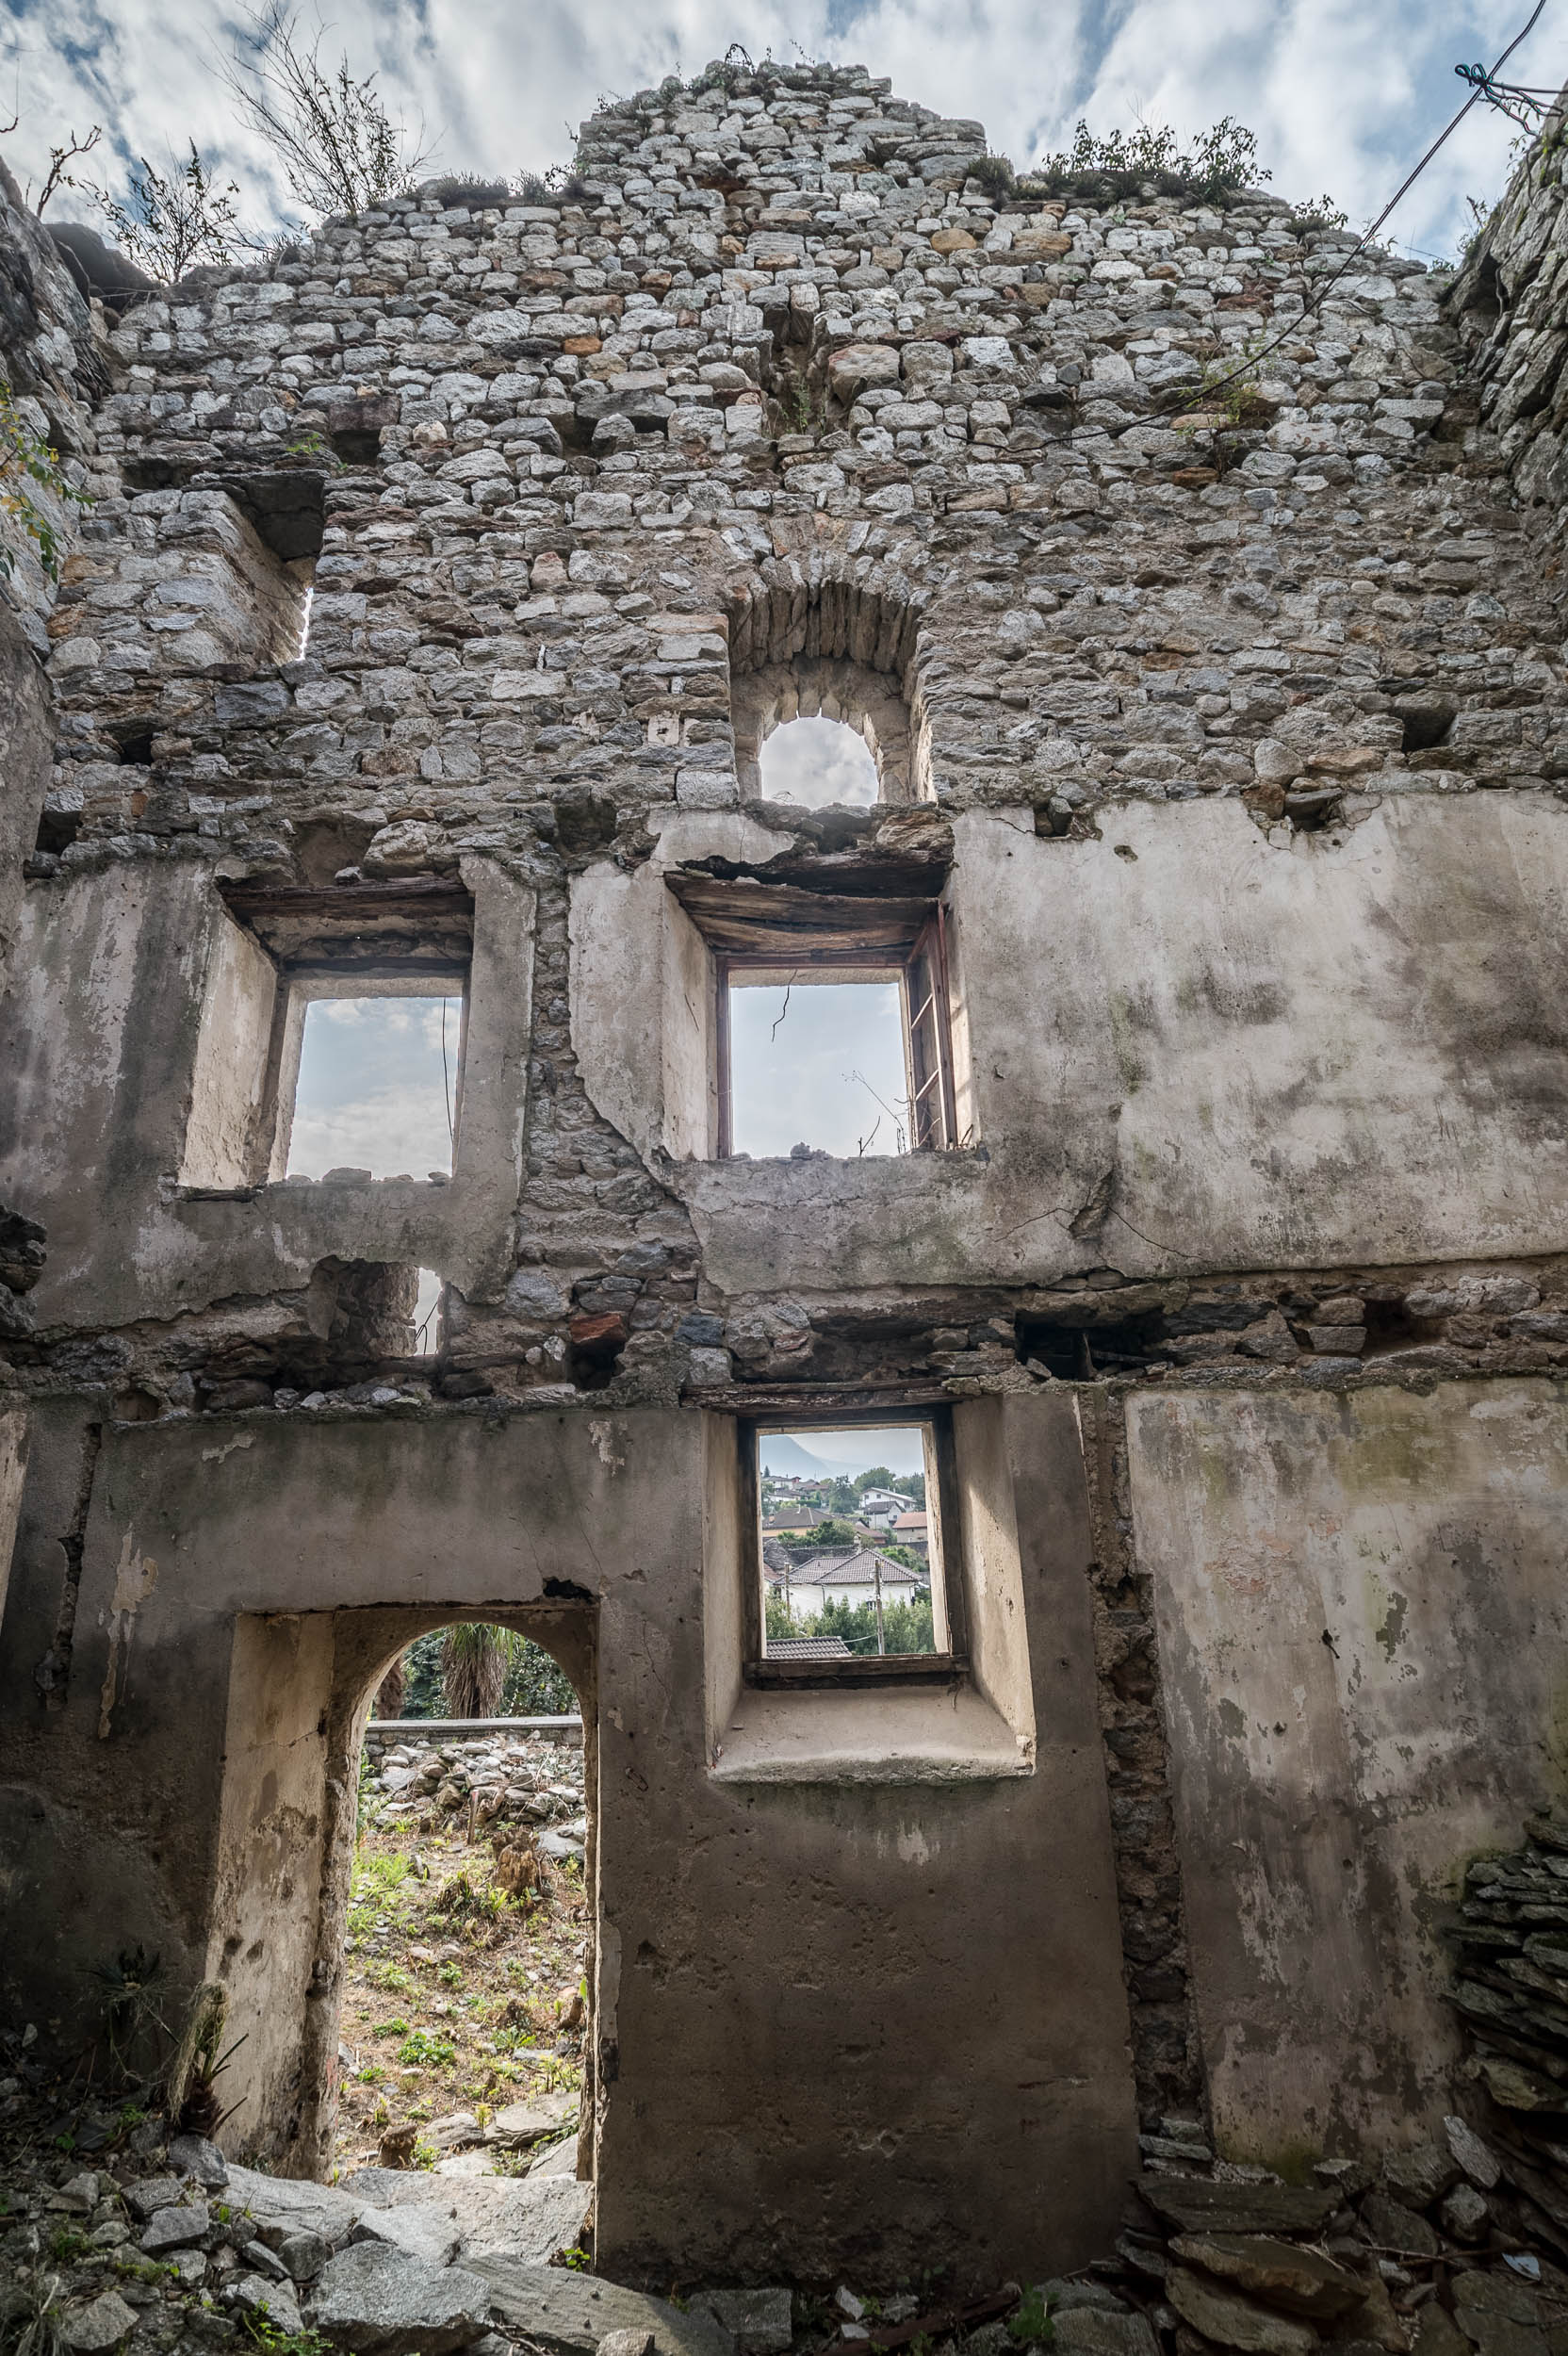 Bellinzona Claro,Places,Switzerland,Ticino,castello,magoria,rovina,swiss,ticino,